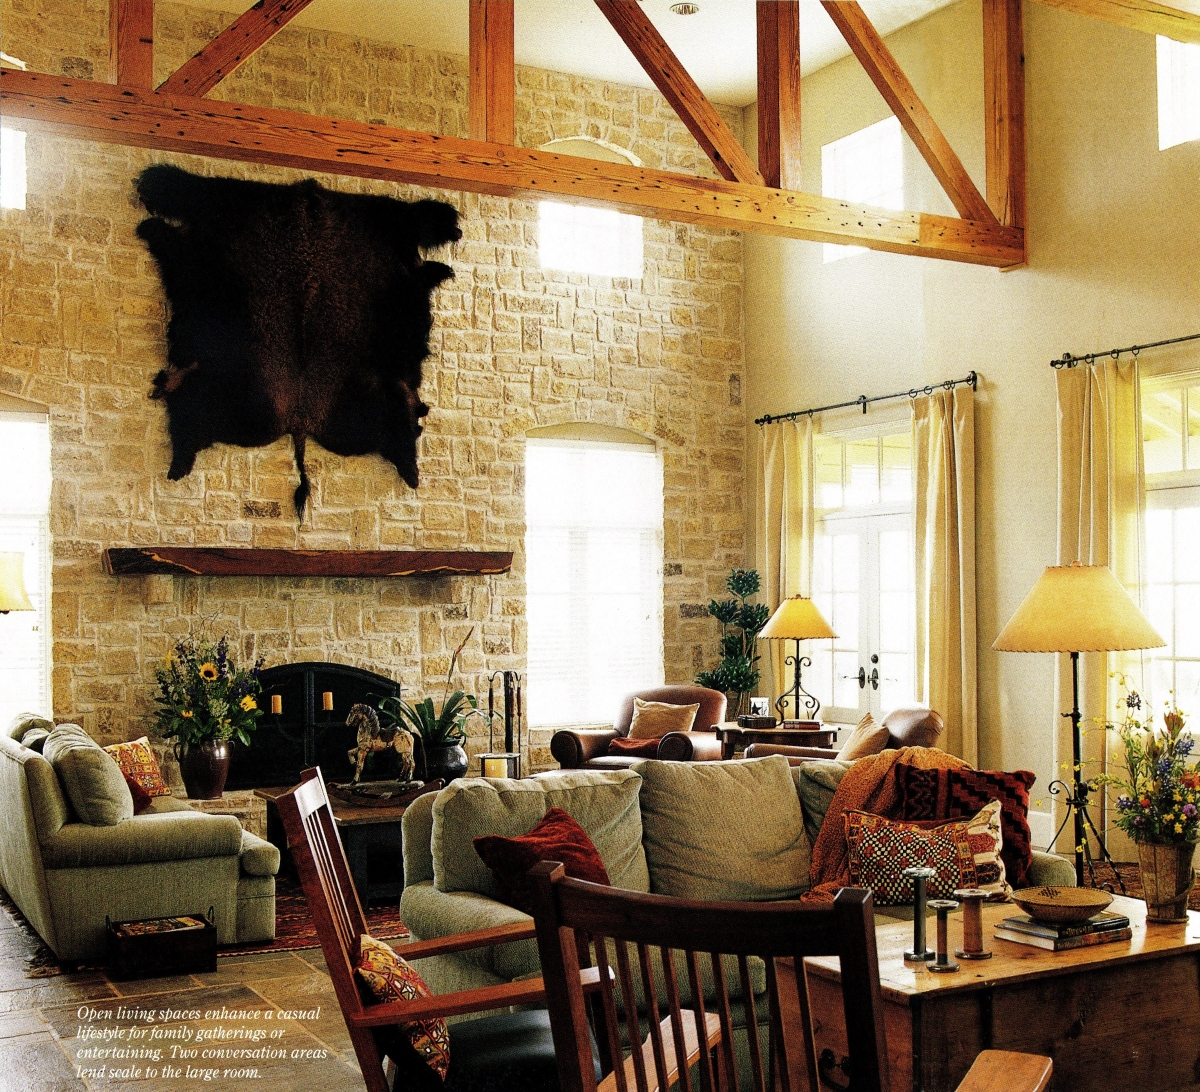 Texas Hill Country Living, Texas Hill Country Design, Texas Hill Country Home, Texas Ranch Home Design Ideas, Mike McKool Ranch, Texas Home Architect, Texas Hill Country Homes, Texas Hill Country Home Ideas,Texas Hill Country Family Room, Texas Family Room, Family Room, Ranch Family Room, Hill Country Family Room, Texas Hill Country Living Room